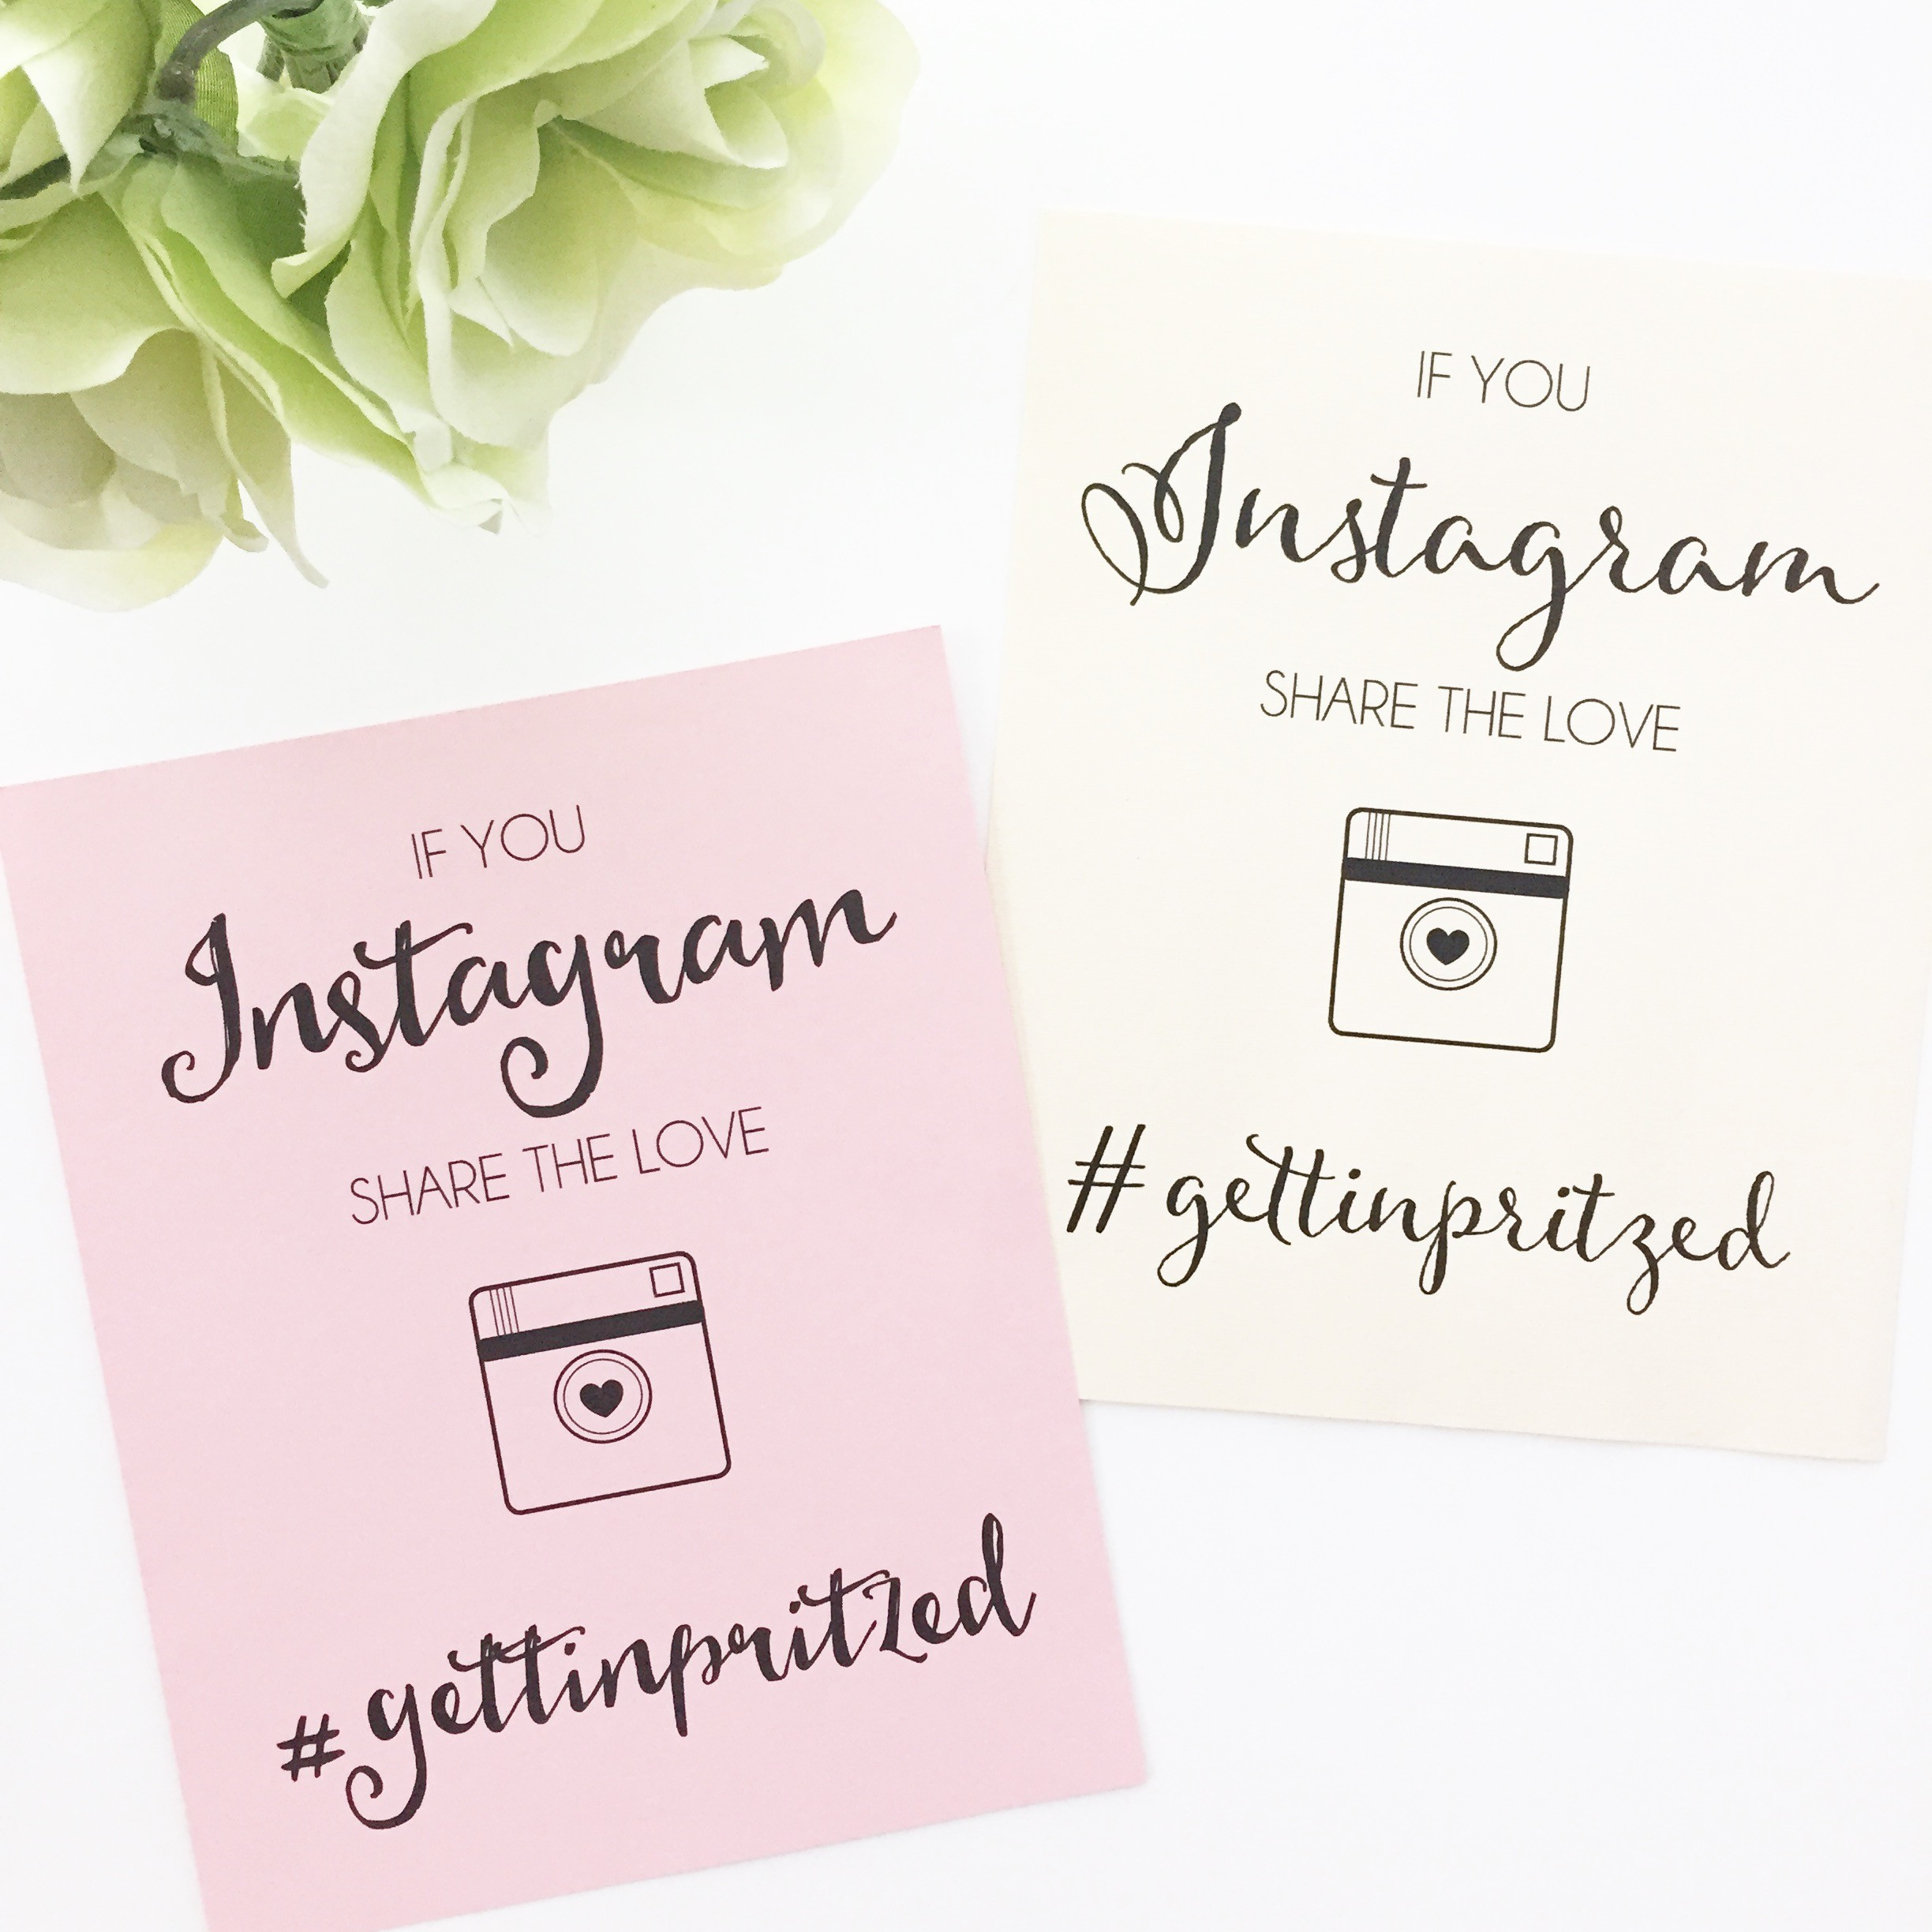 Wedding Hashtags Generator.The Wedding Hashtag Craze